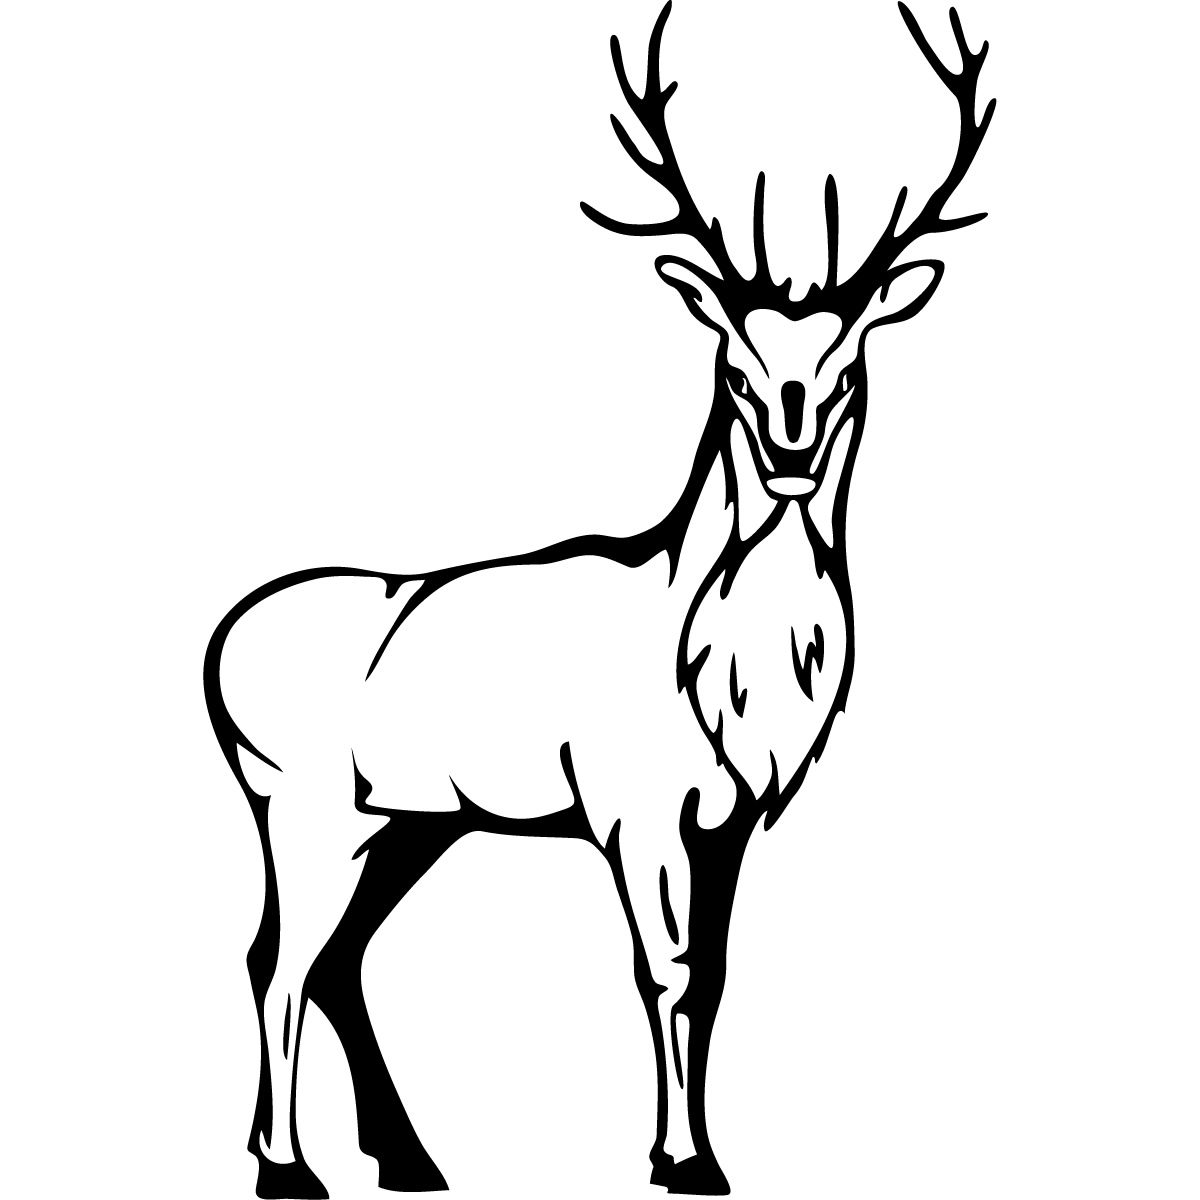 Image De Art Deer And Drawing: Stag Deer Stood Wall Art Sticker Wall Decal Transfers